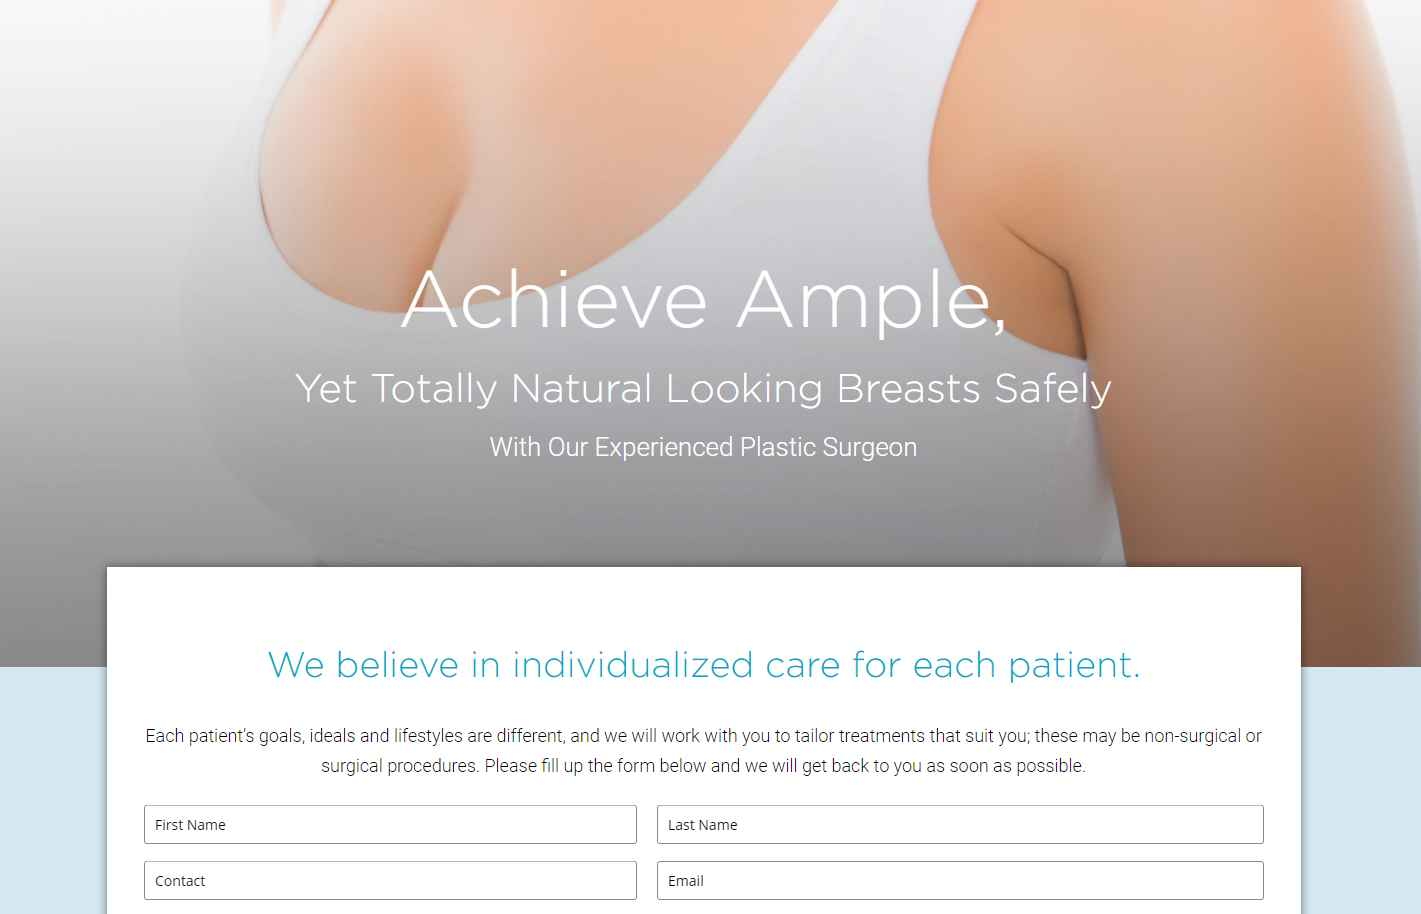 andrew tay Top Breast Implant Clinics in Singapore